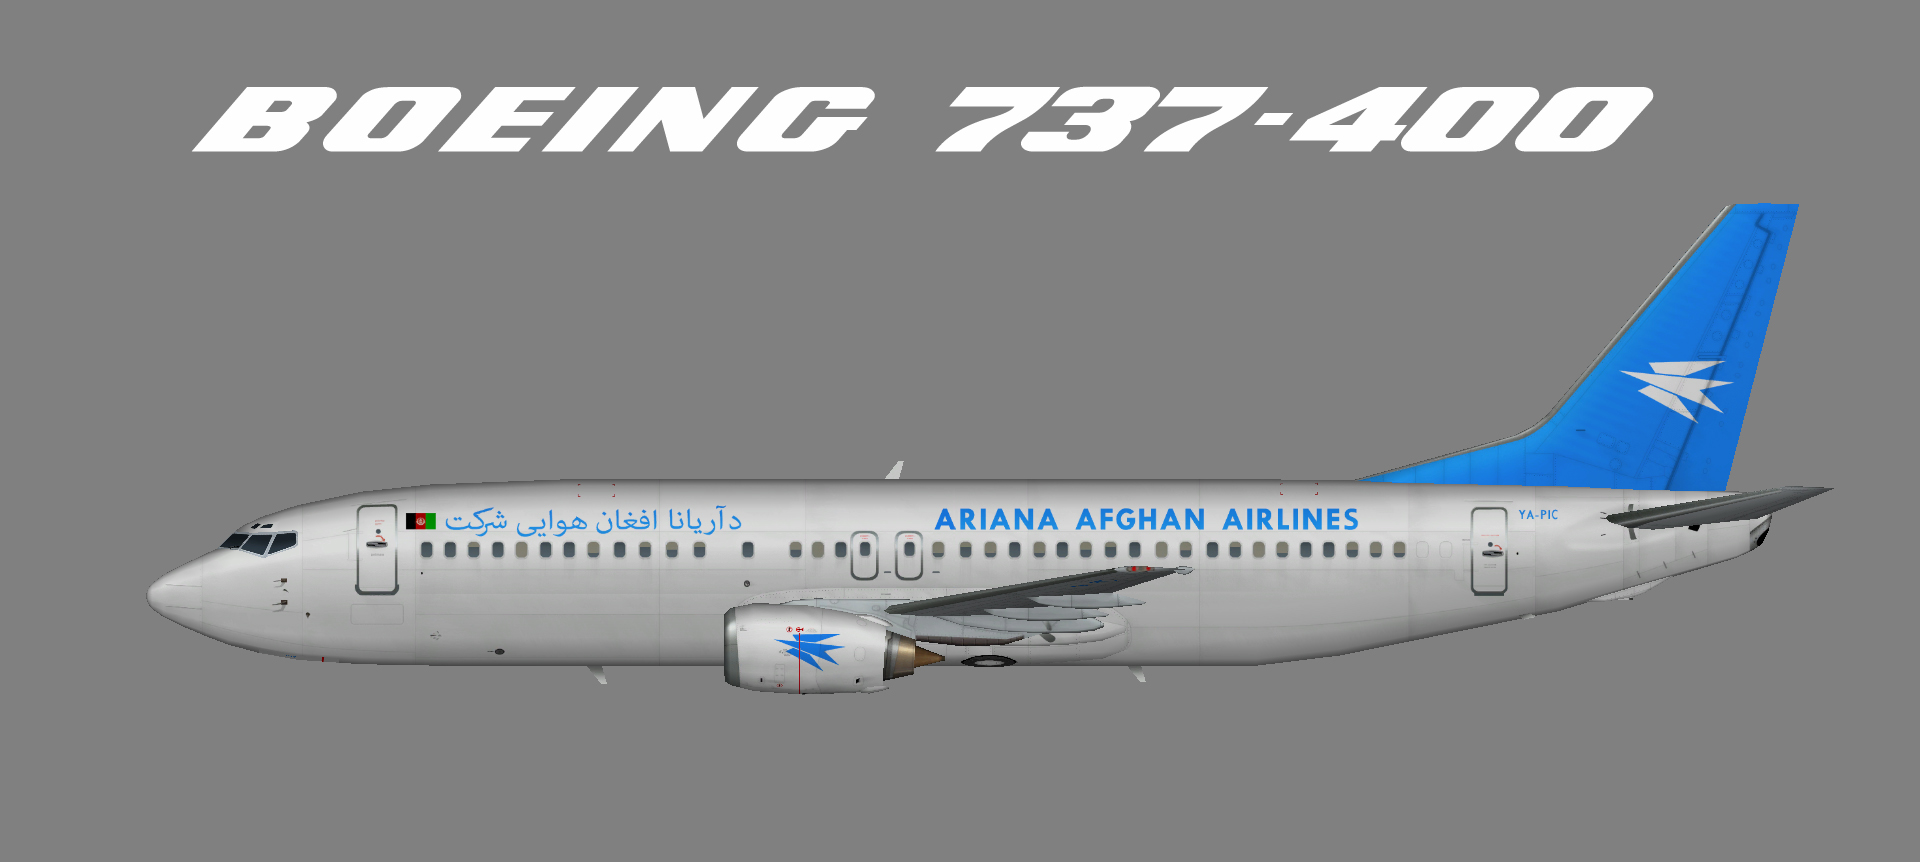 Ariana Afghan Airlines 737-400